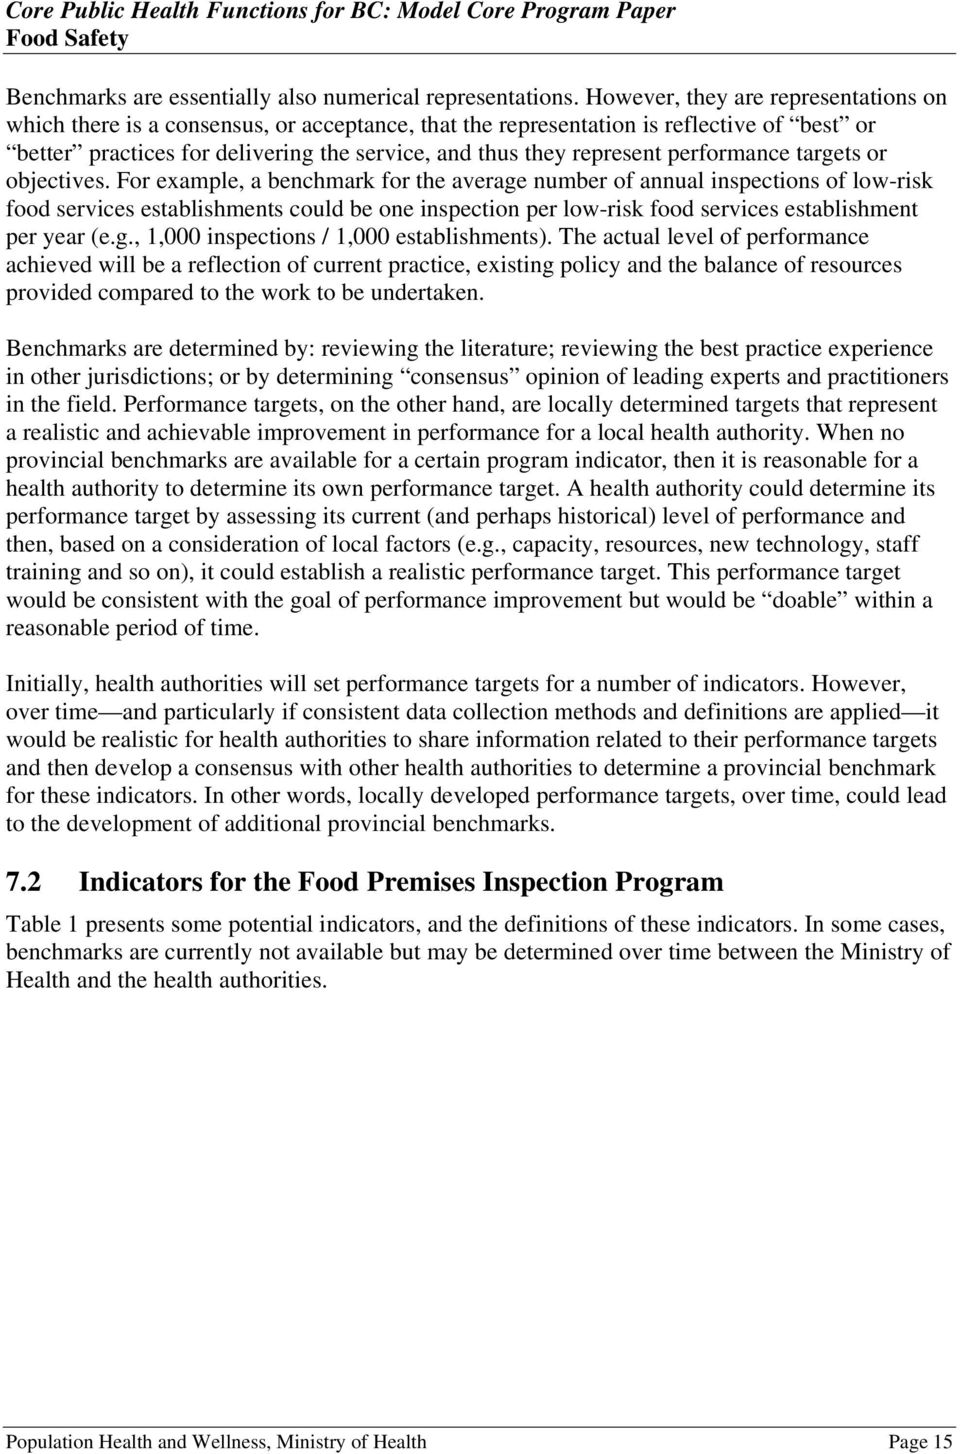 Model Core Program Paper: Food Safety - PDF